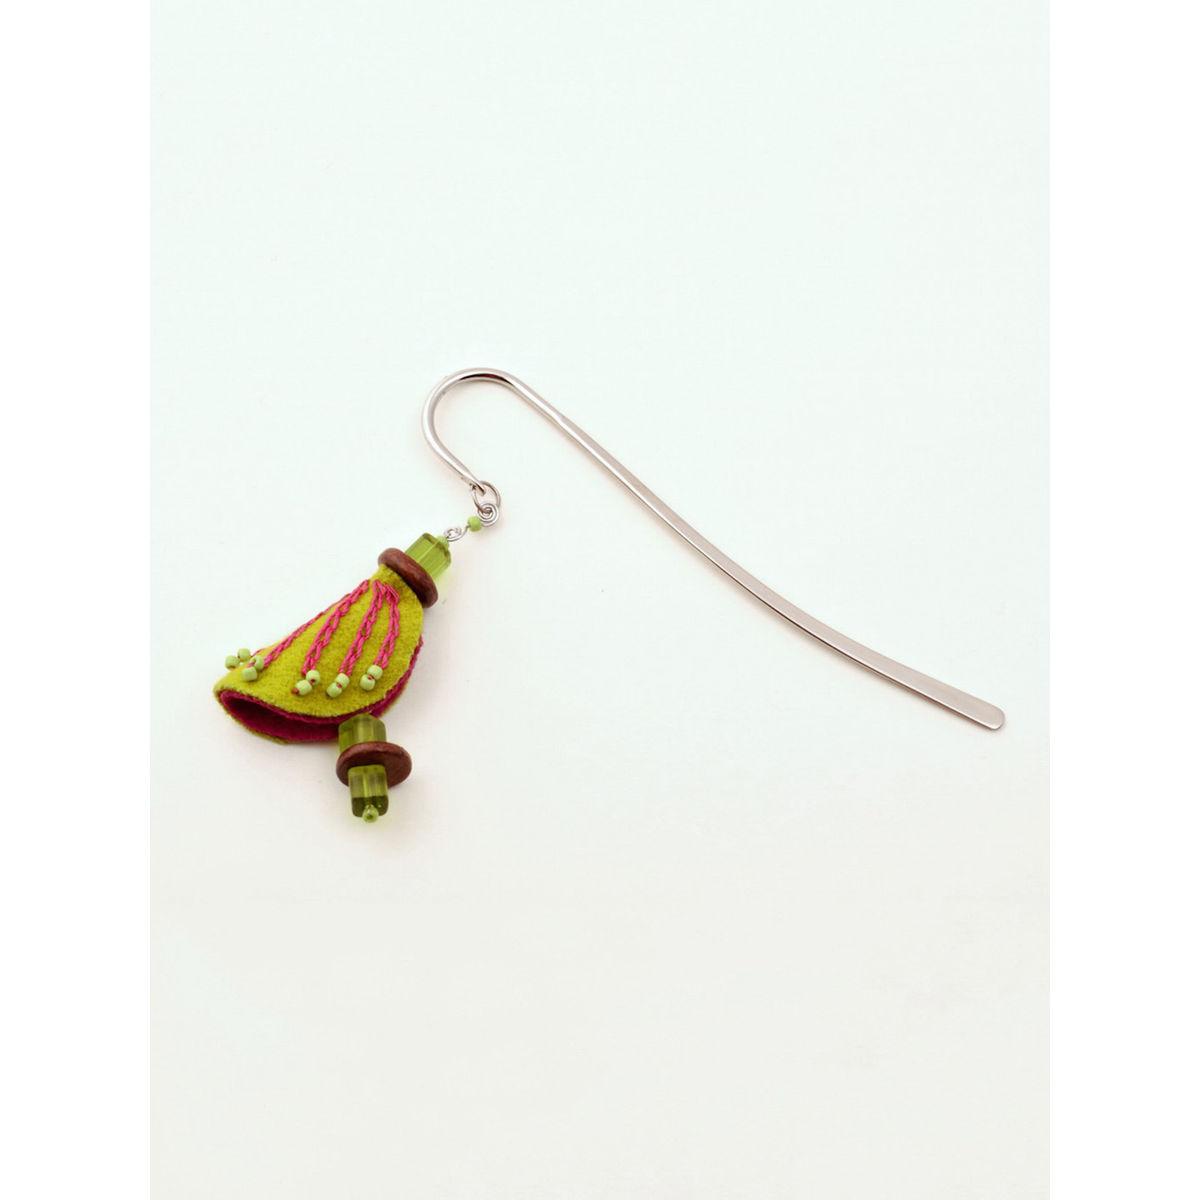 Chrysalis Bookmark - Green